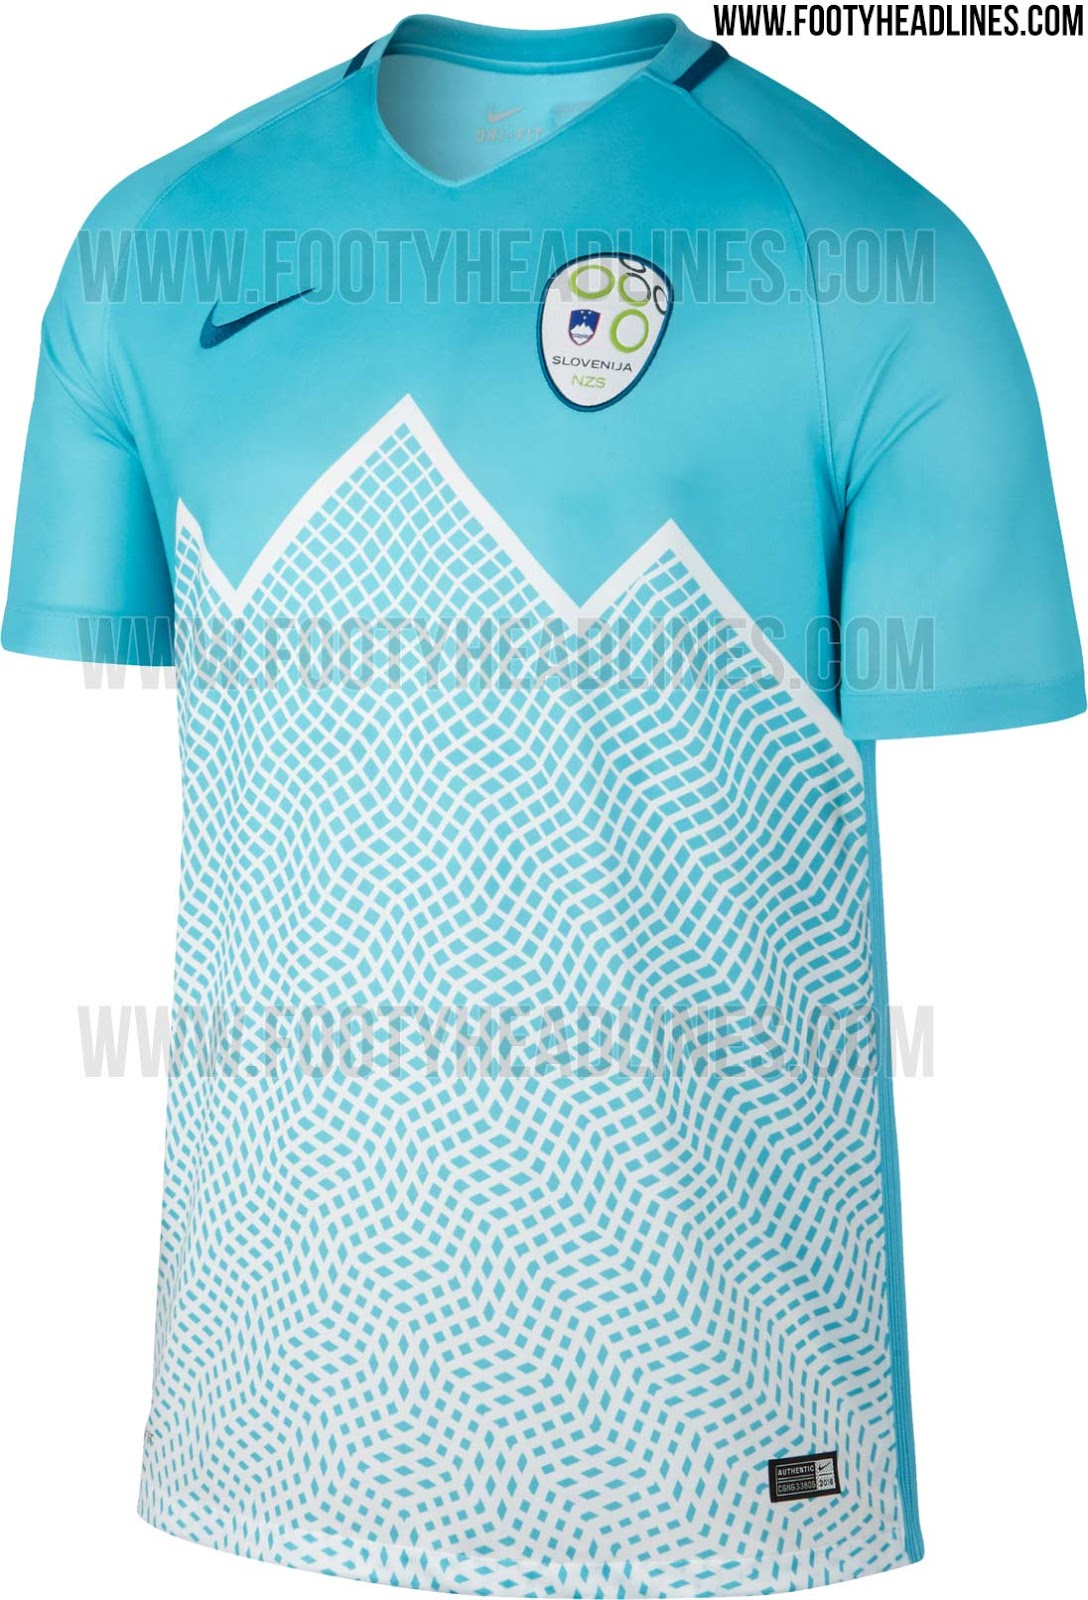 insane slovenia 2016 home and away kits released footy